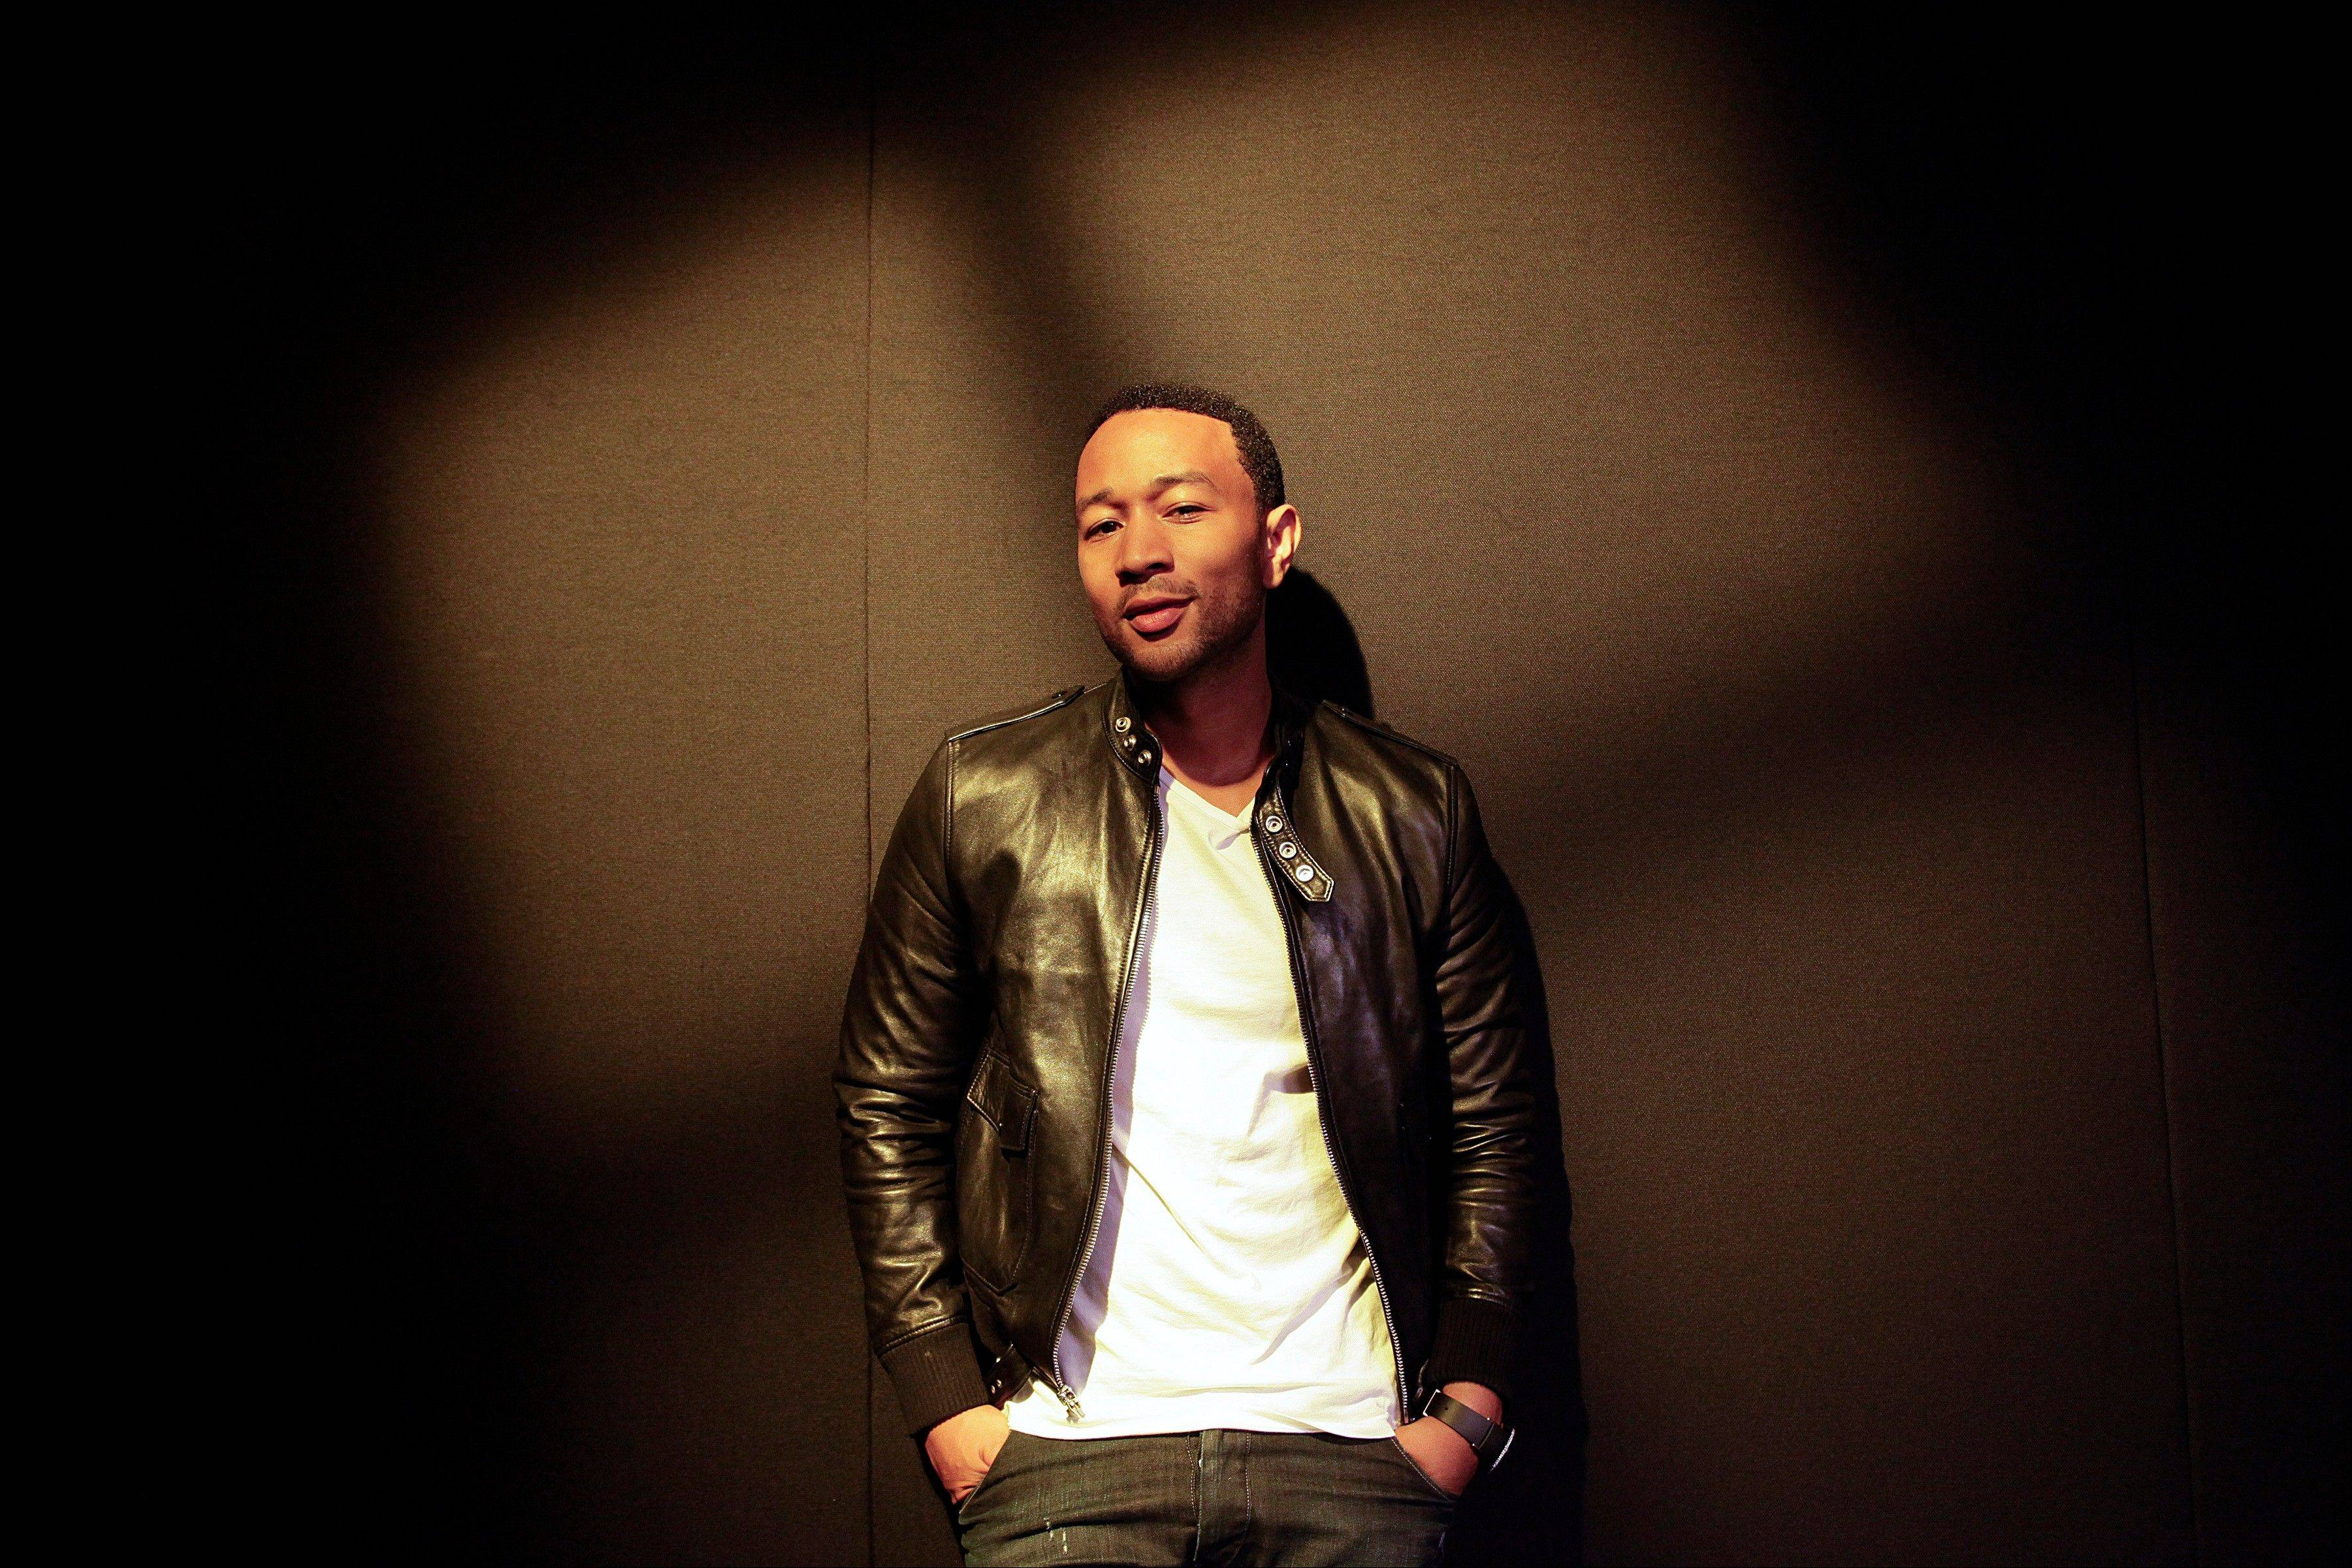 Singer John Legend�s fourth album went on sale earlier this month. He hits the road in October for a tour that will bring him to Chicago on Nov. 20.